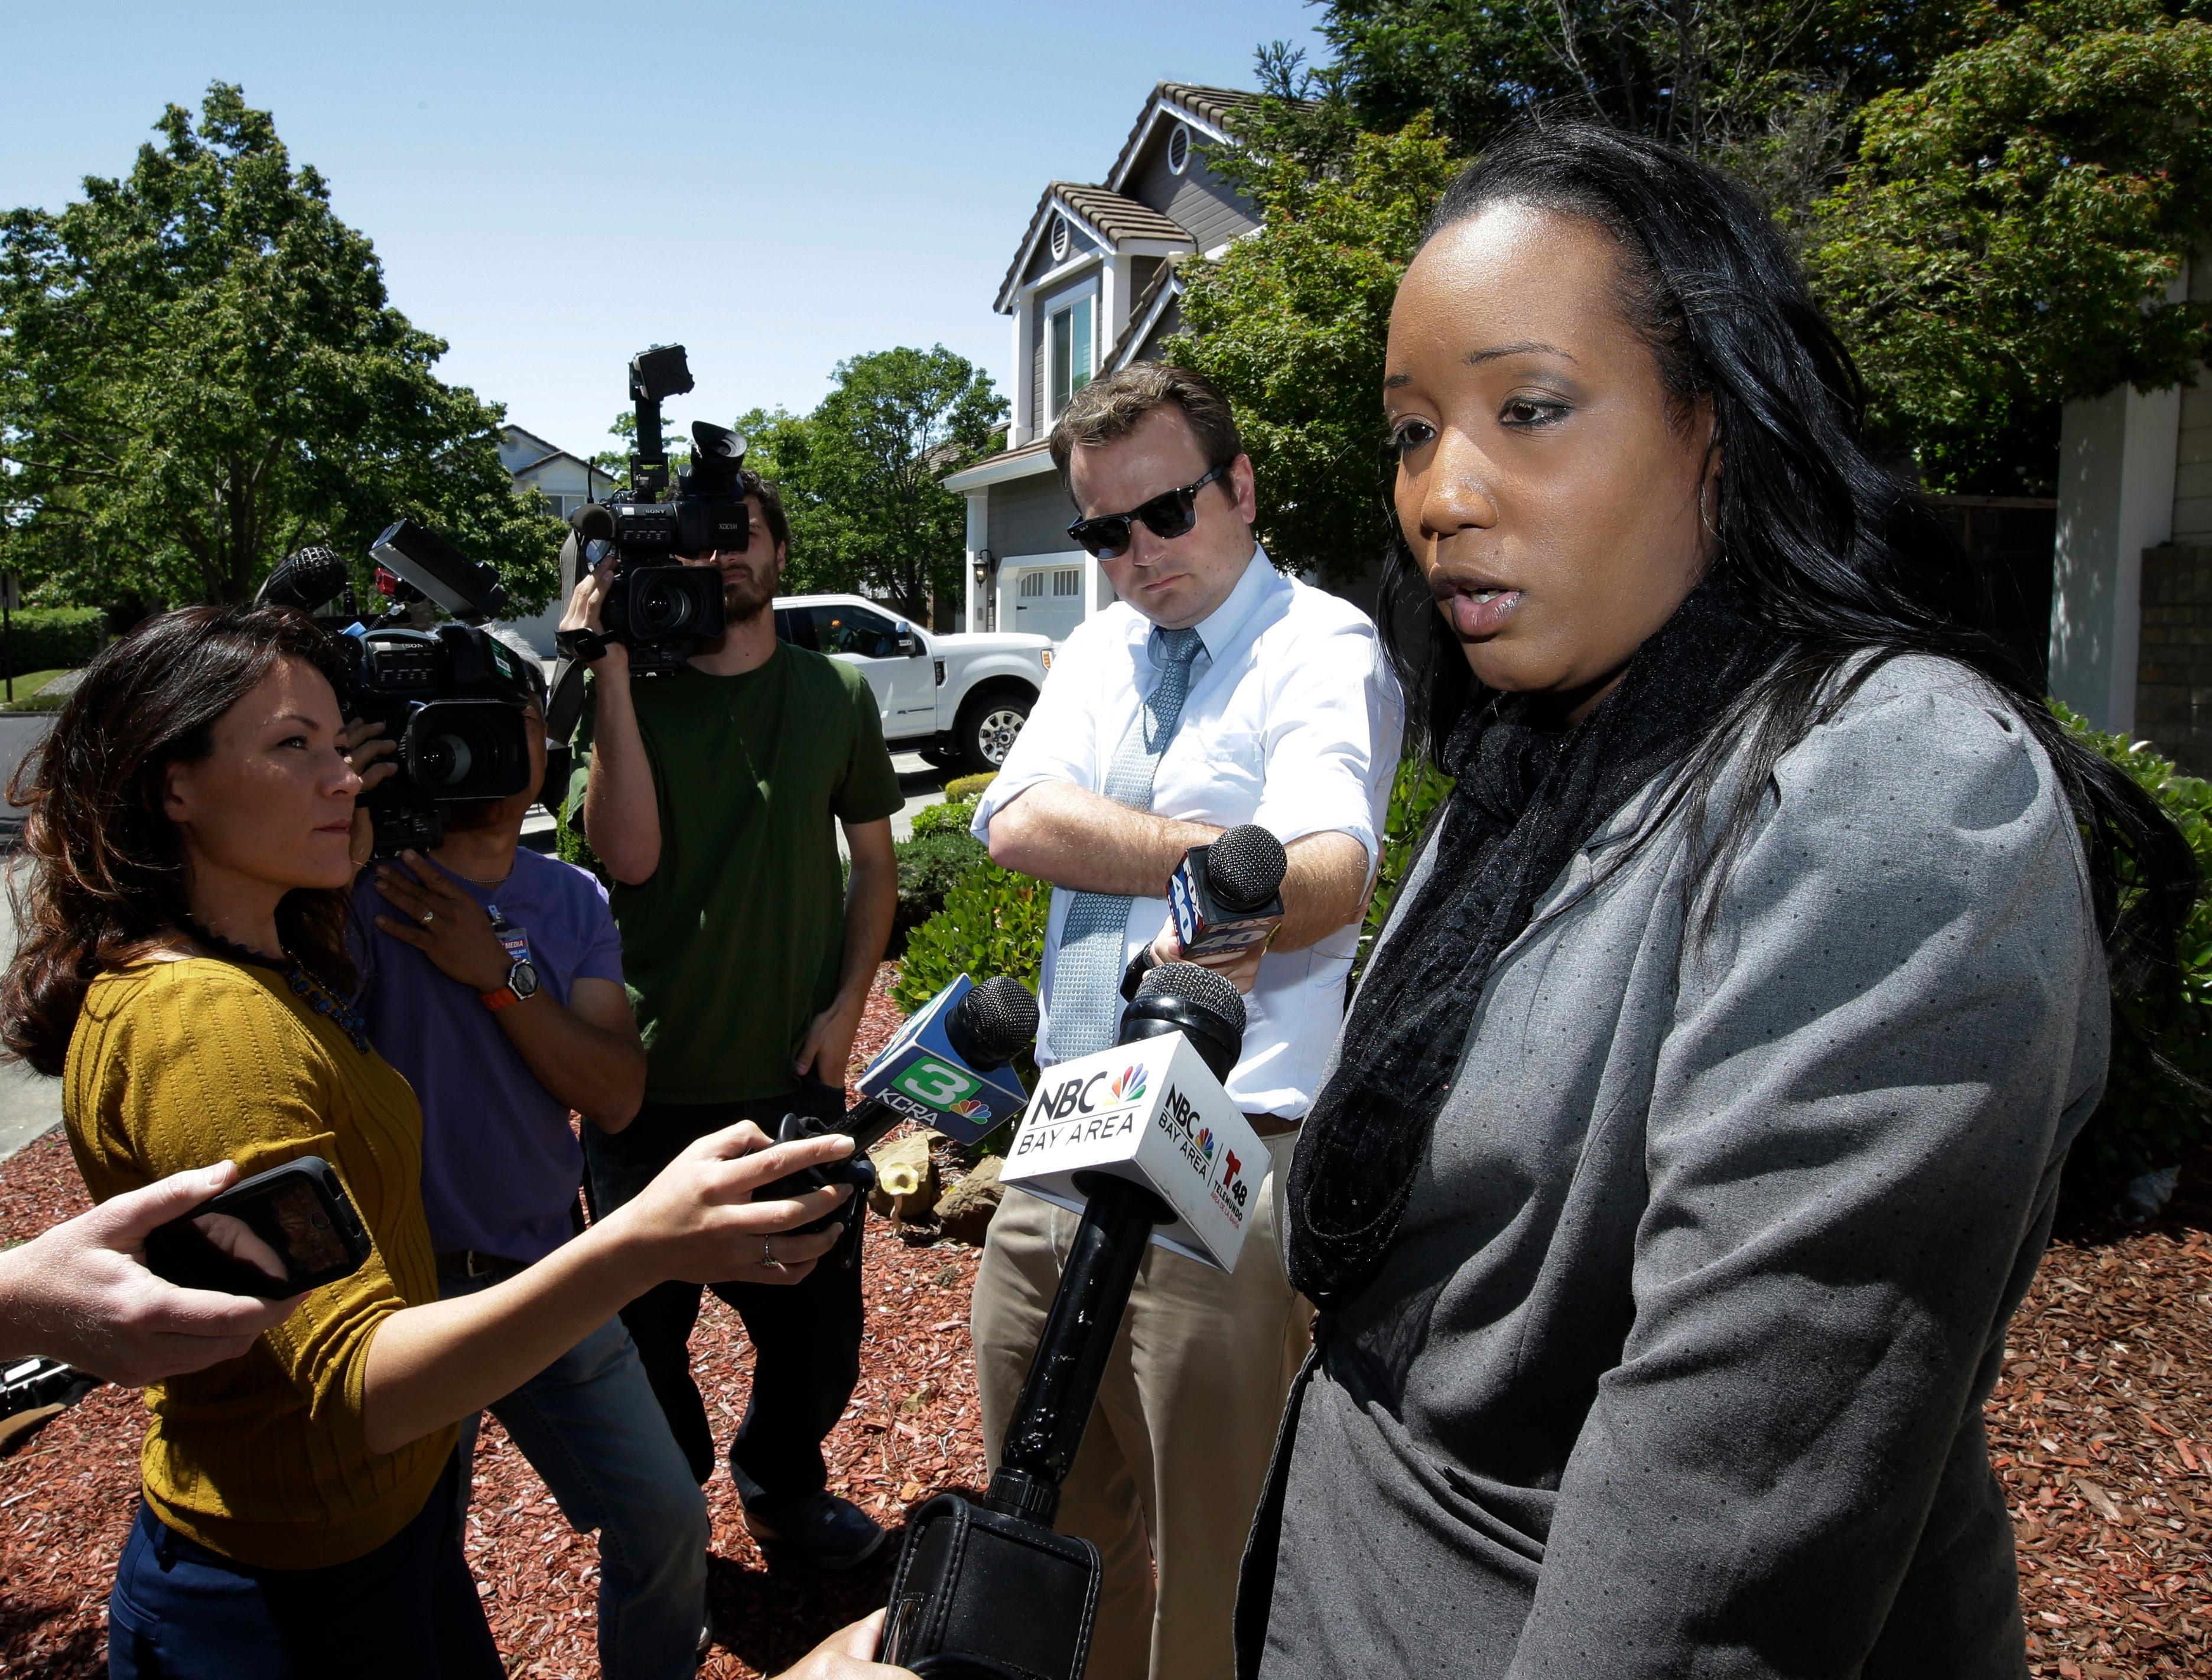 Ina Rogers talks with reporters about the seizure of her 10 children by law enforcement Monday, May 14, 2018, in Fairfield, Calif. Authorities removed the children living at their home on March 31, and placed them in protective custody after one of them ran away. Rogers faces charges of child neglect and her husband Jonathan Allen has been charged with torture and child abuse. Rogers denied the children were mistreatment. (AP Photo/Rich Pedroncelli)